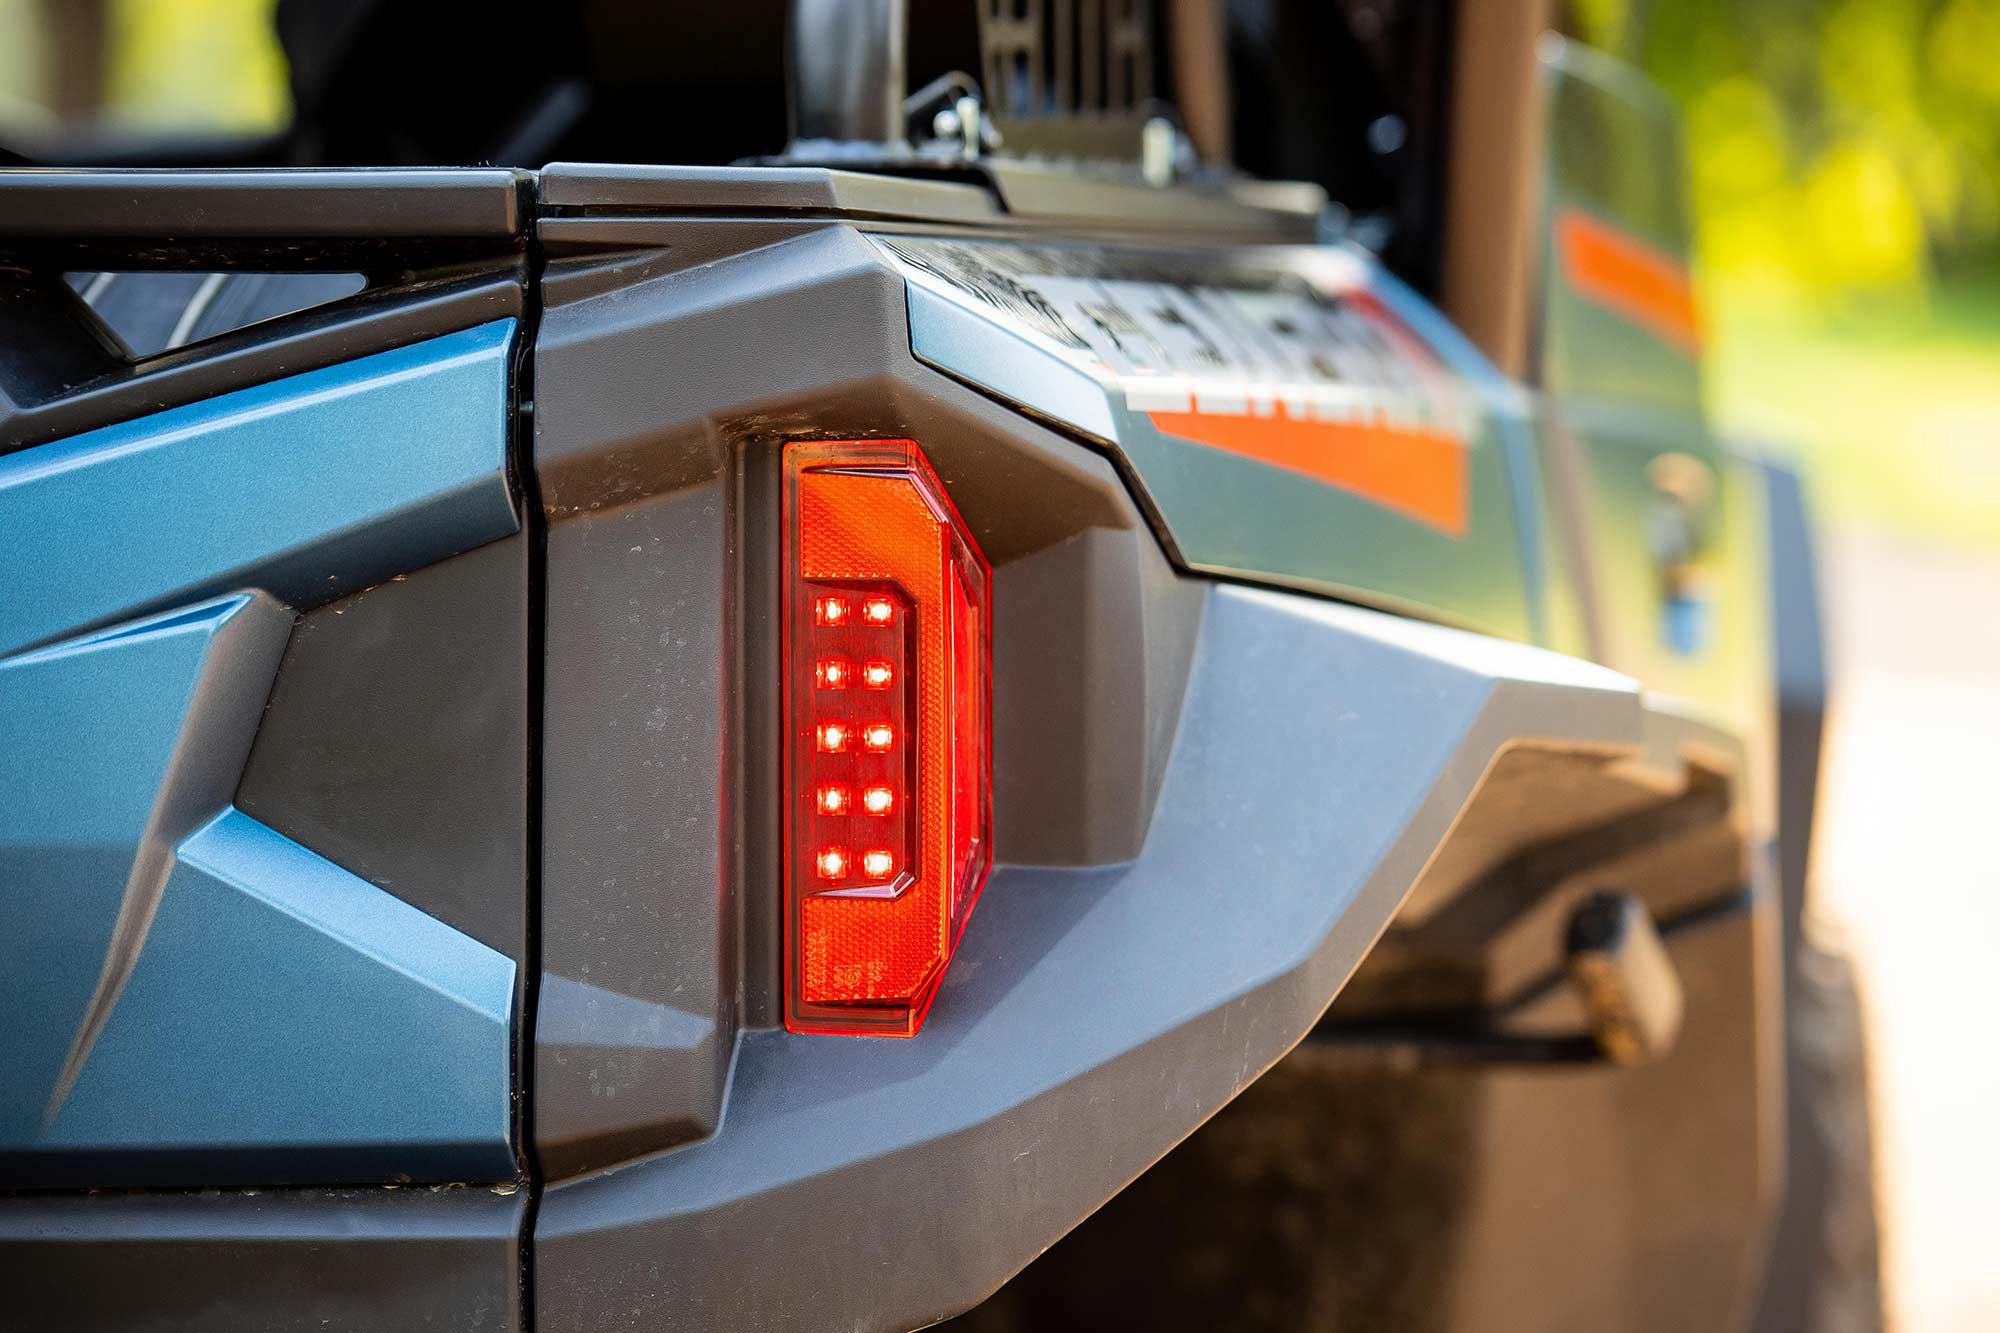 LED taillights and wide fenders help keep your rig safe and clean.